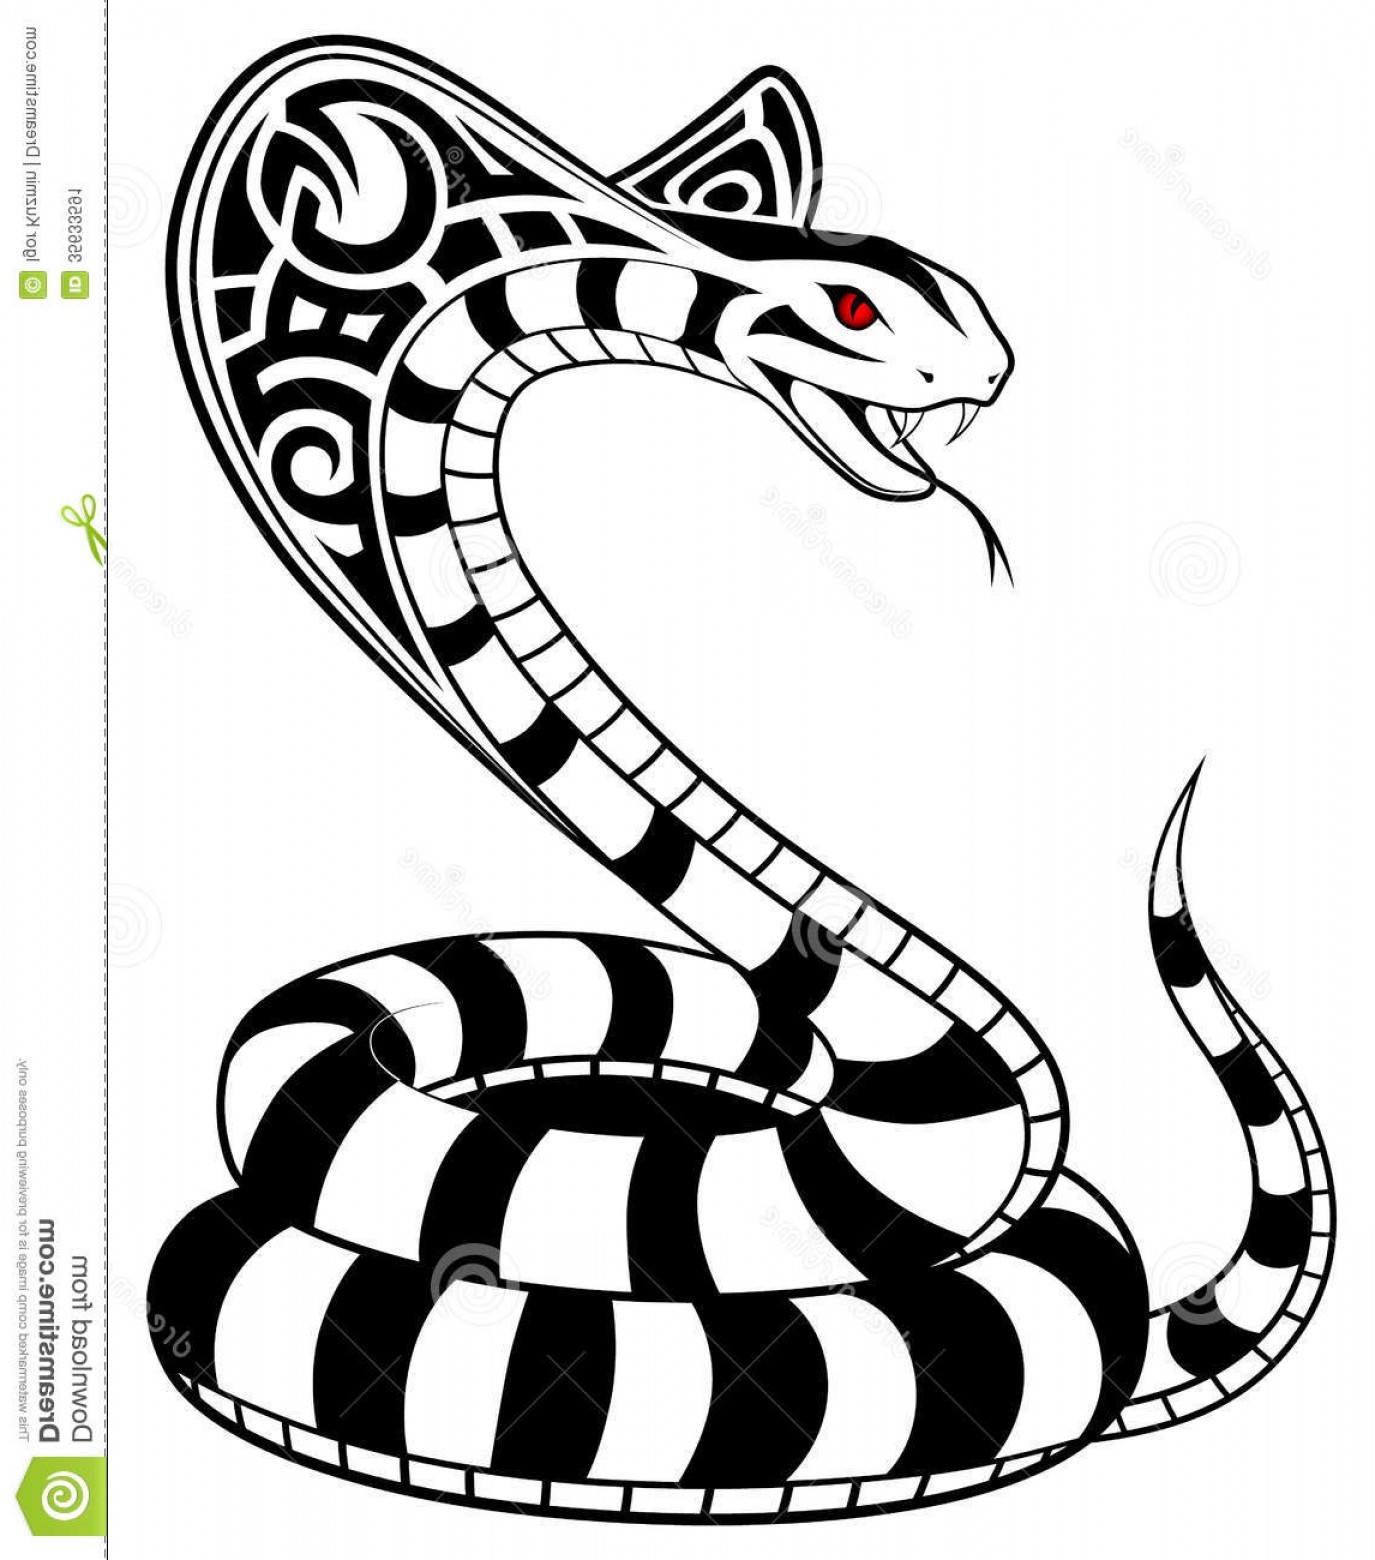 Snake Crown Vector: Stock Image Vector Snake Tribal Tattoo Cobra Form Image